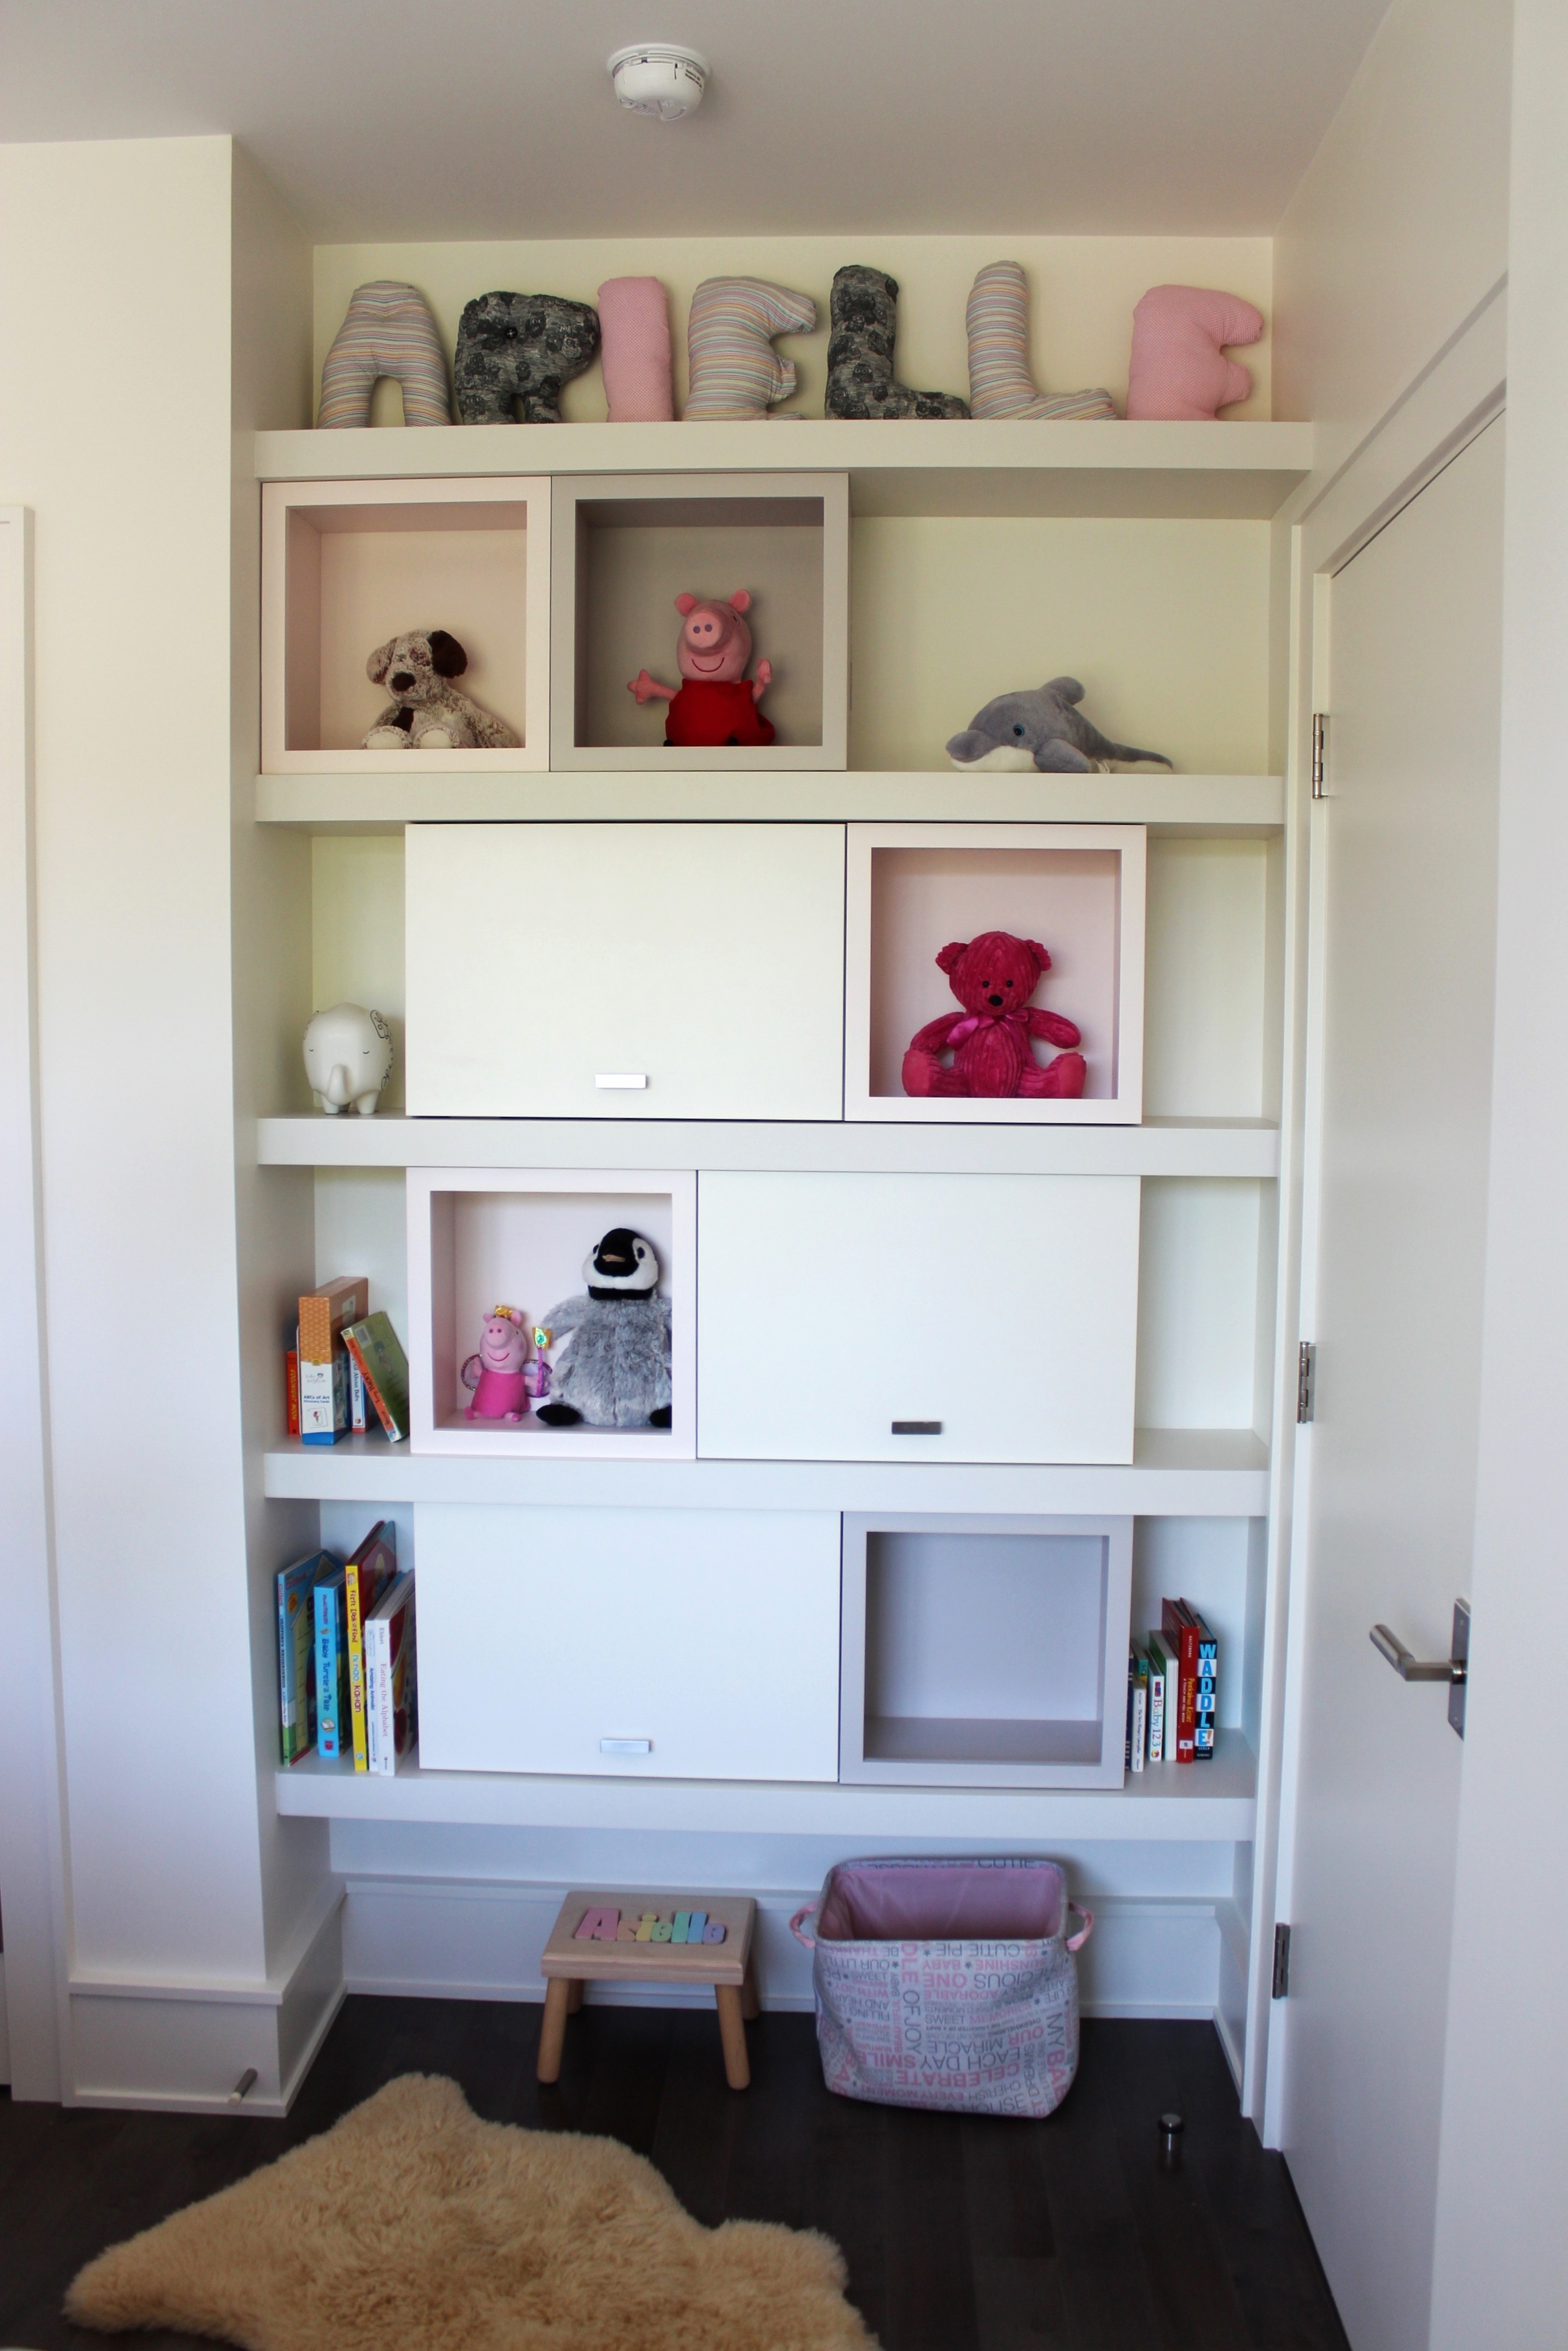 Girl's room used the same concept for storage. Plenty of space for books, toys, and whatever else inside the cabinets!